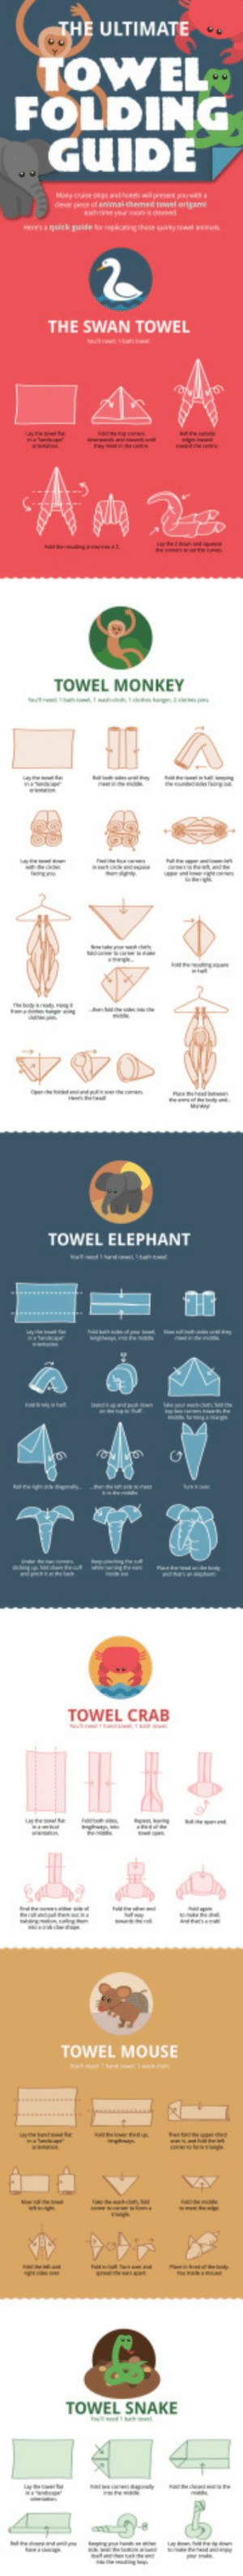 Omg, Tumblr, and Blog: E ULTIMATE  OWEL  FOLDING  GUIDE  towel origam  THE SWAN TOWEL  TOWEL MONKEY  TOWEL ELEPHANT  TOWEL CRAB  TOWEL MOUSE  TOWEL SNAKE omg-images:  The ultimate towel folding guide. Save for later to impress someone.